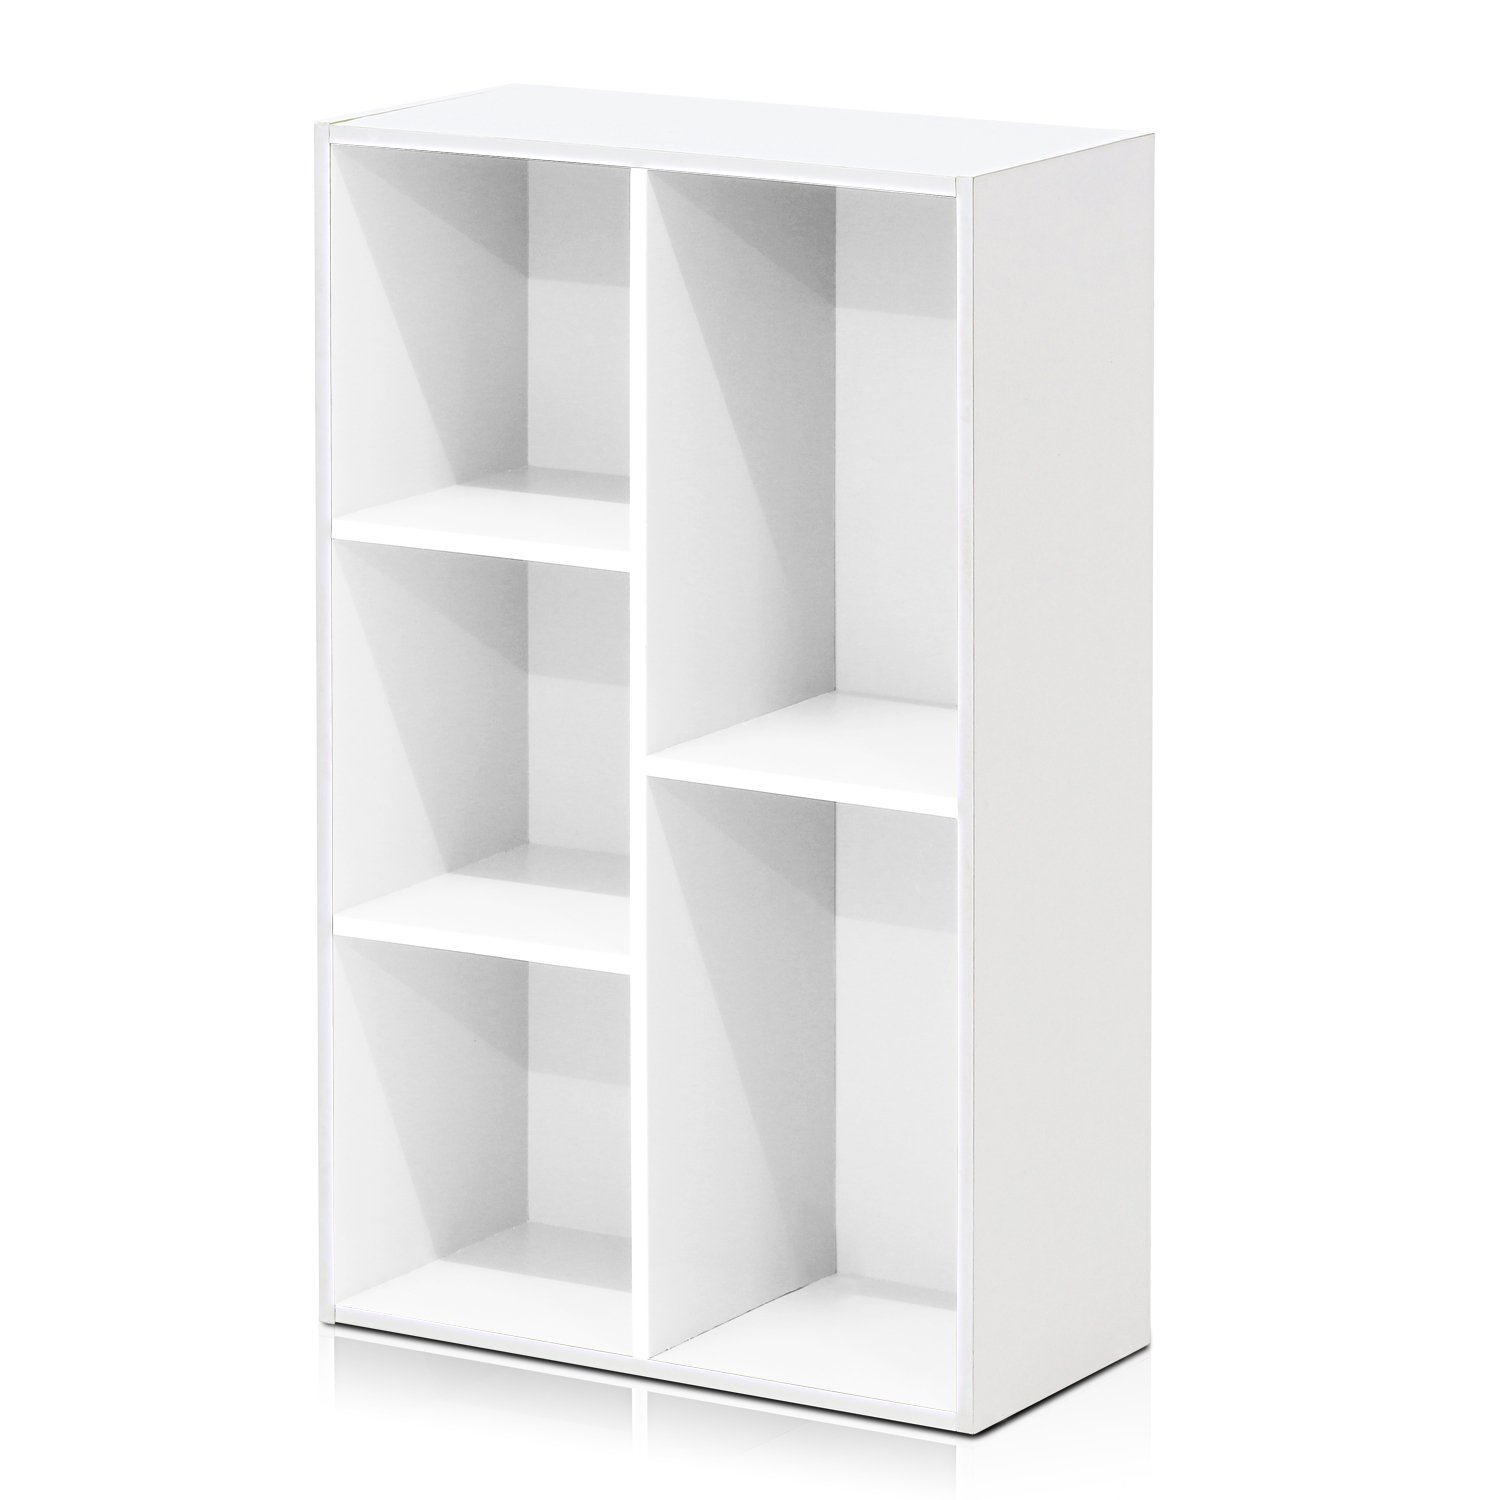 Furinno 5-Cube Open Shelf, White 11069WH